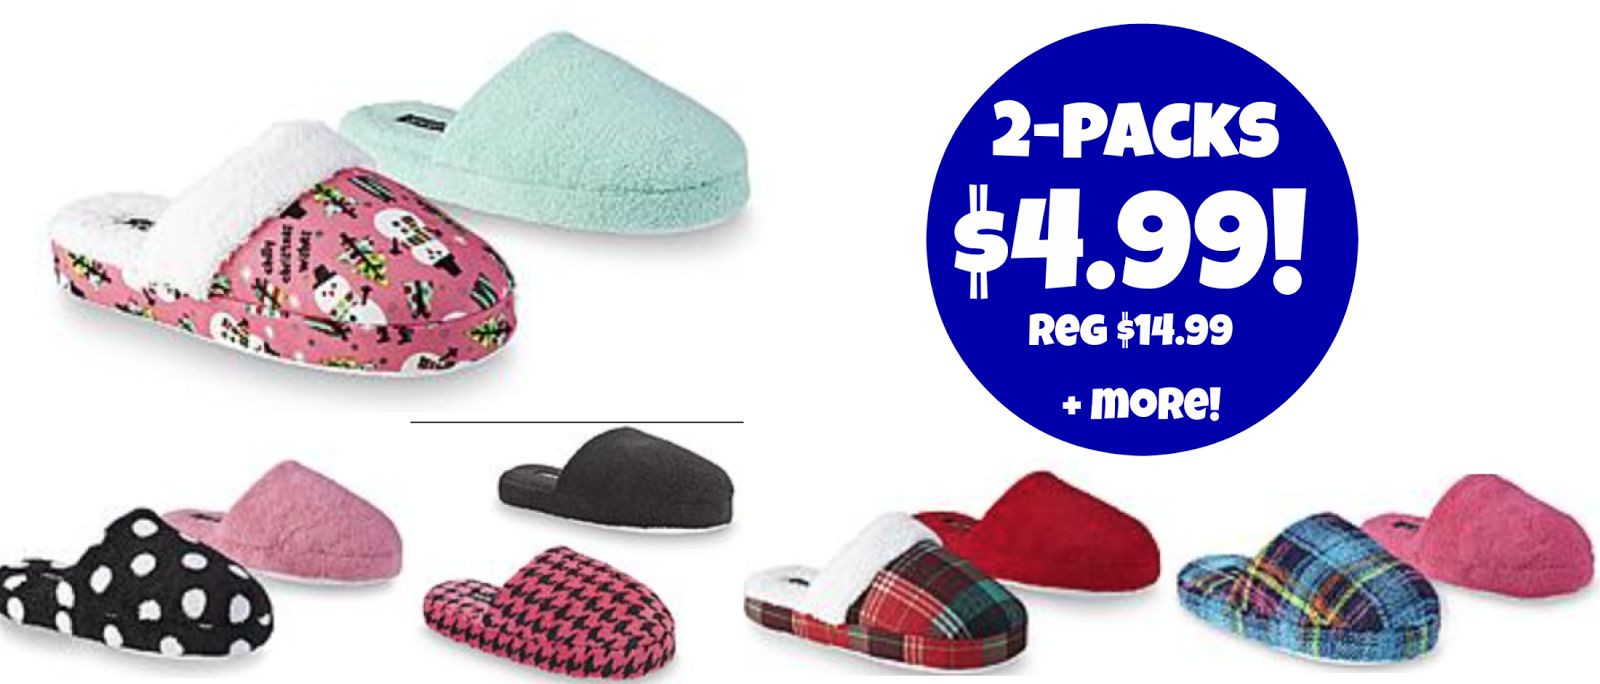 http://www.thebinderladies.com/2015/01/hot-sears-com-2-pack-joe-boxer-slippers.html#.VLbY-IfduyM